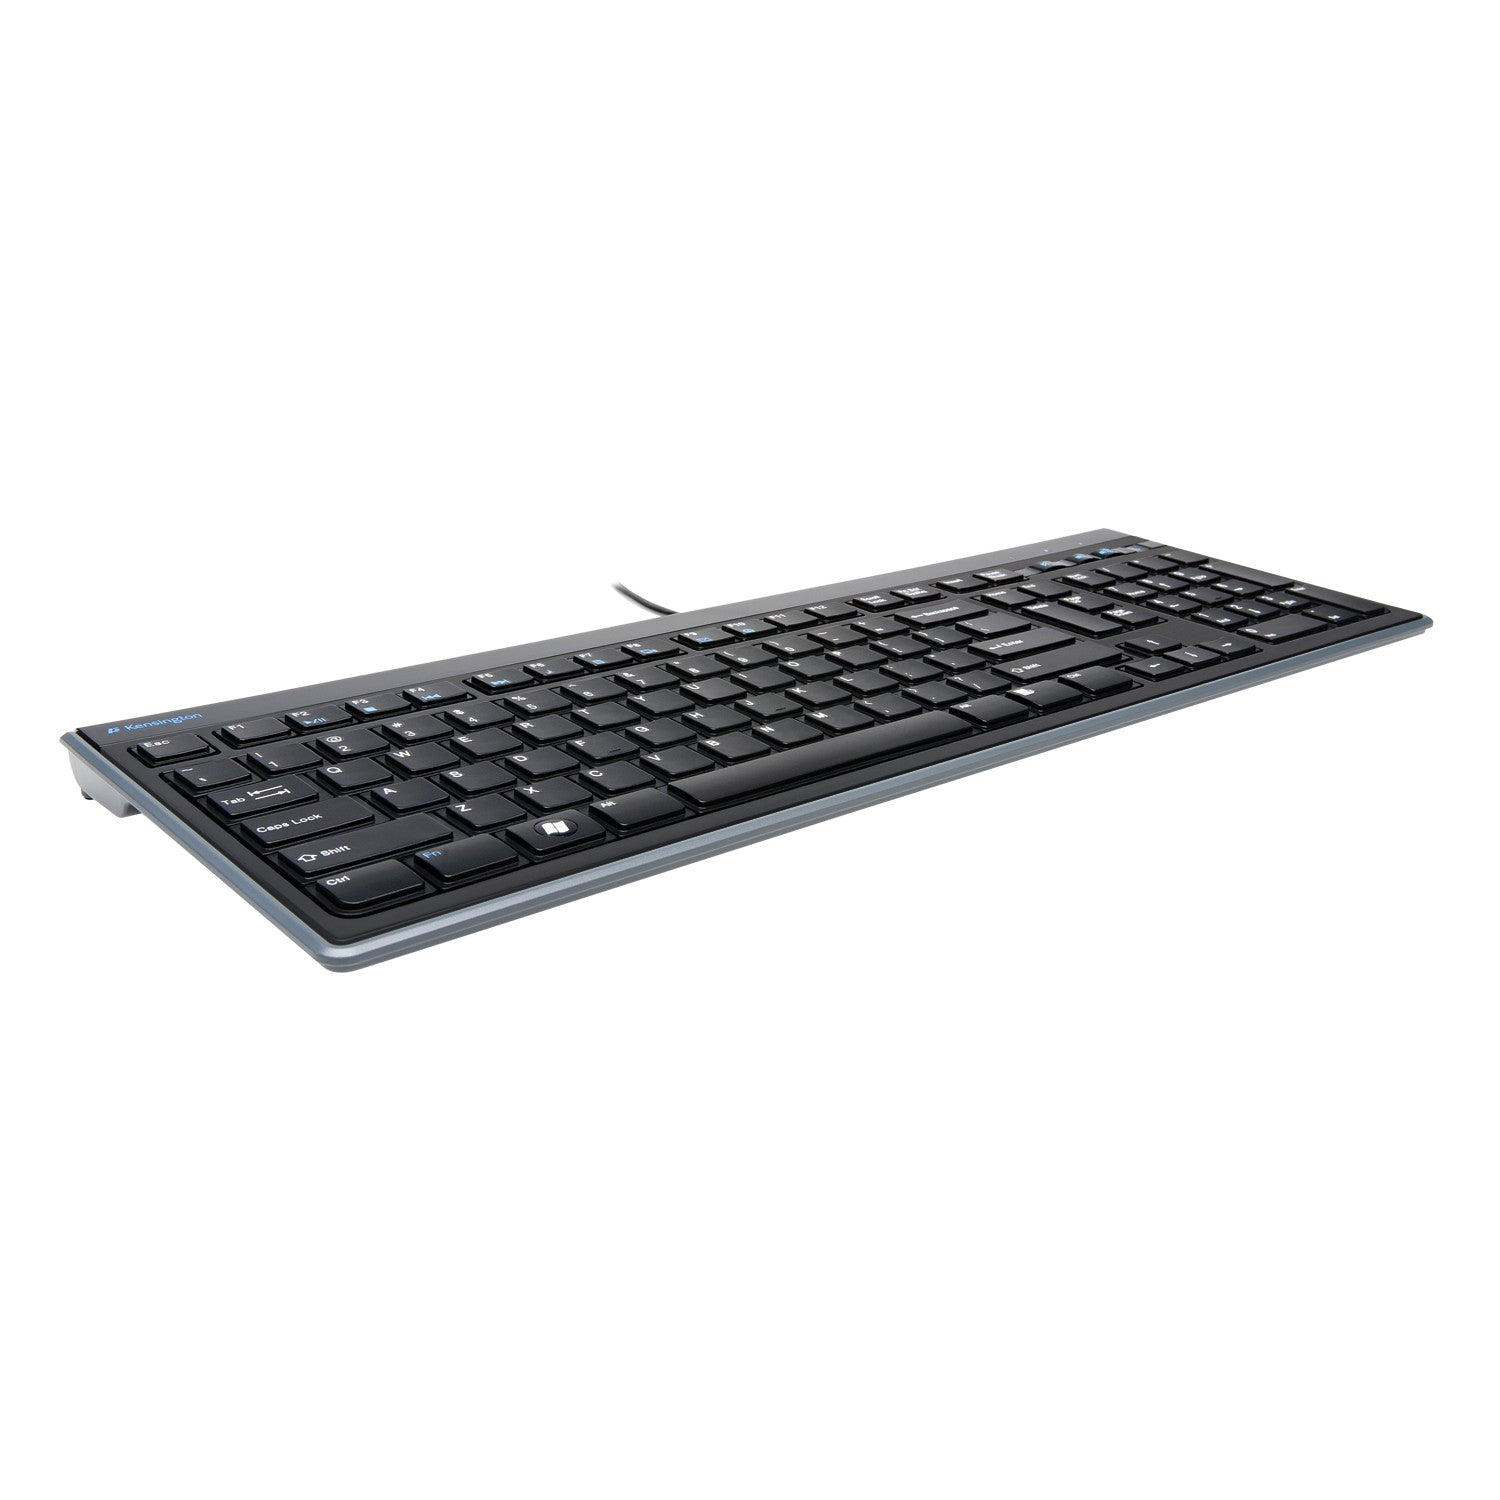 Kensington Advance Fit™ Full-Size Slim Keyboard, Accessories, Kensington, BaRRiL - BaRRiL